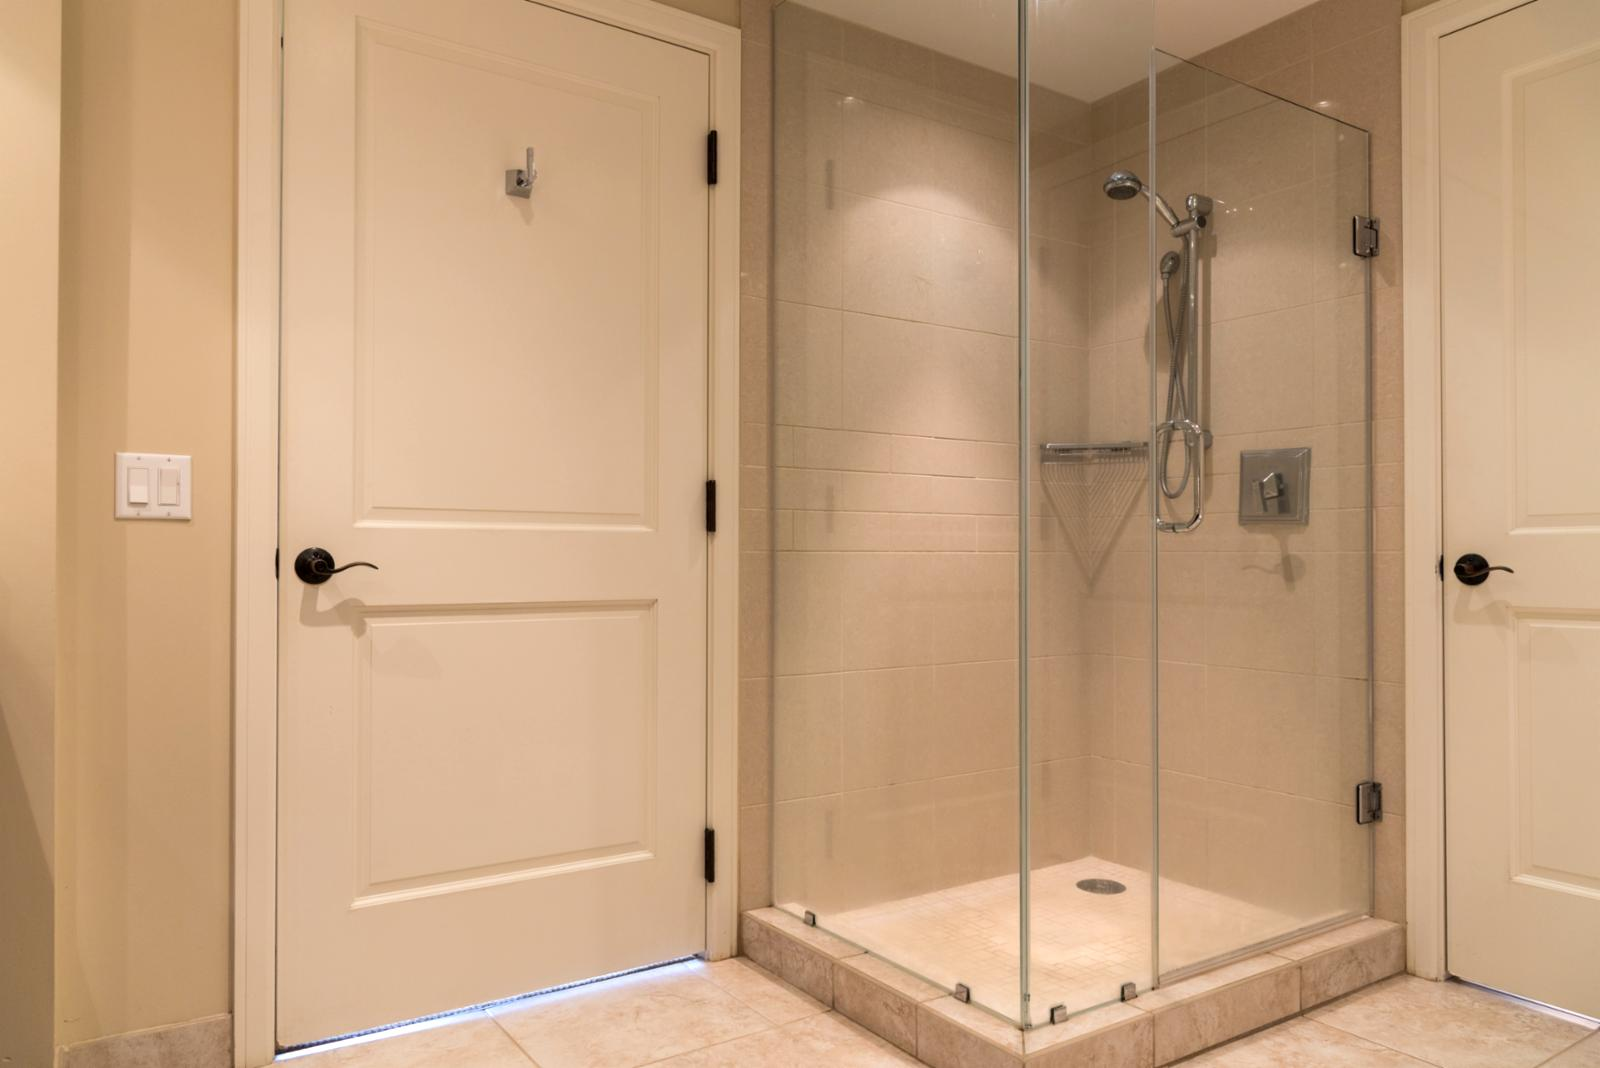 Floor to ceiling glassed shower